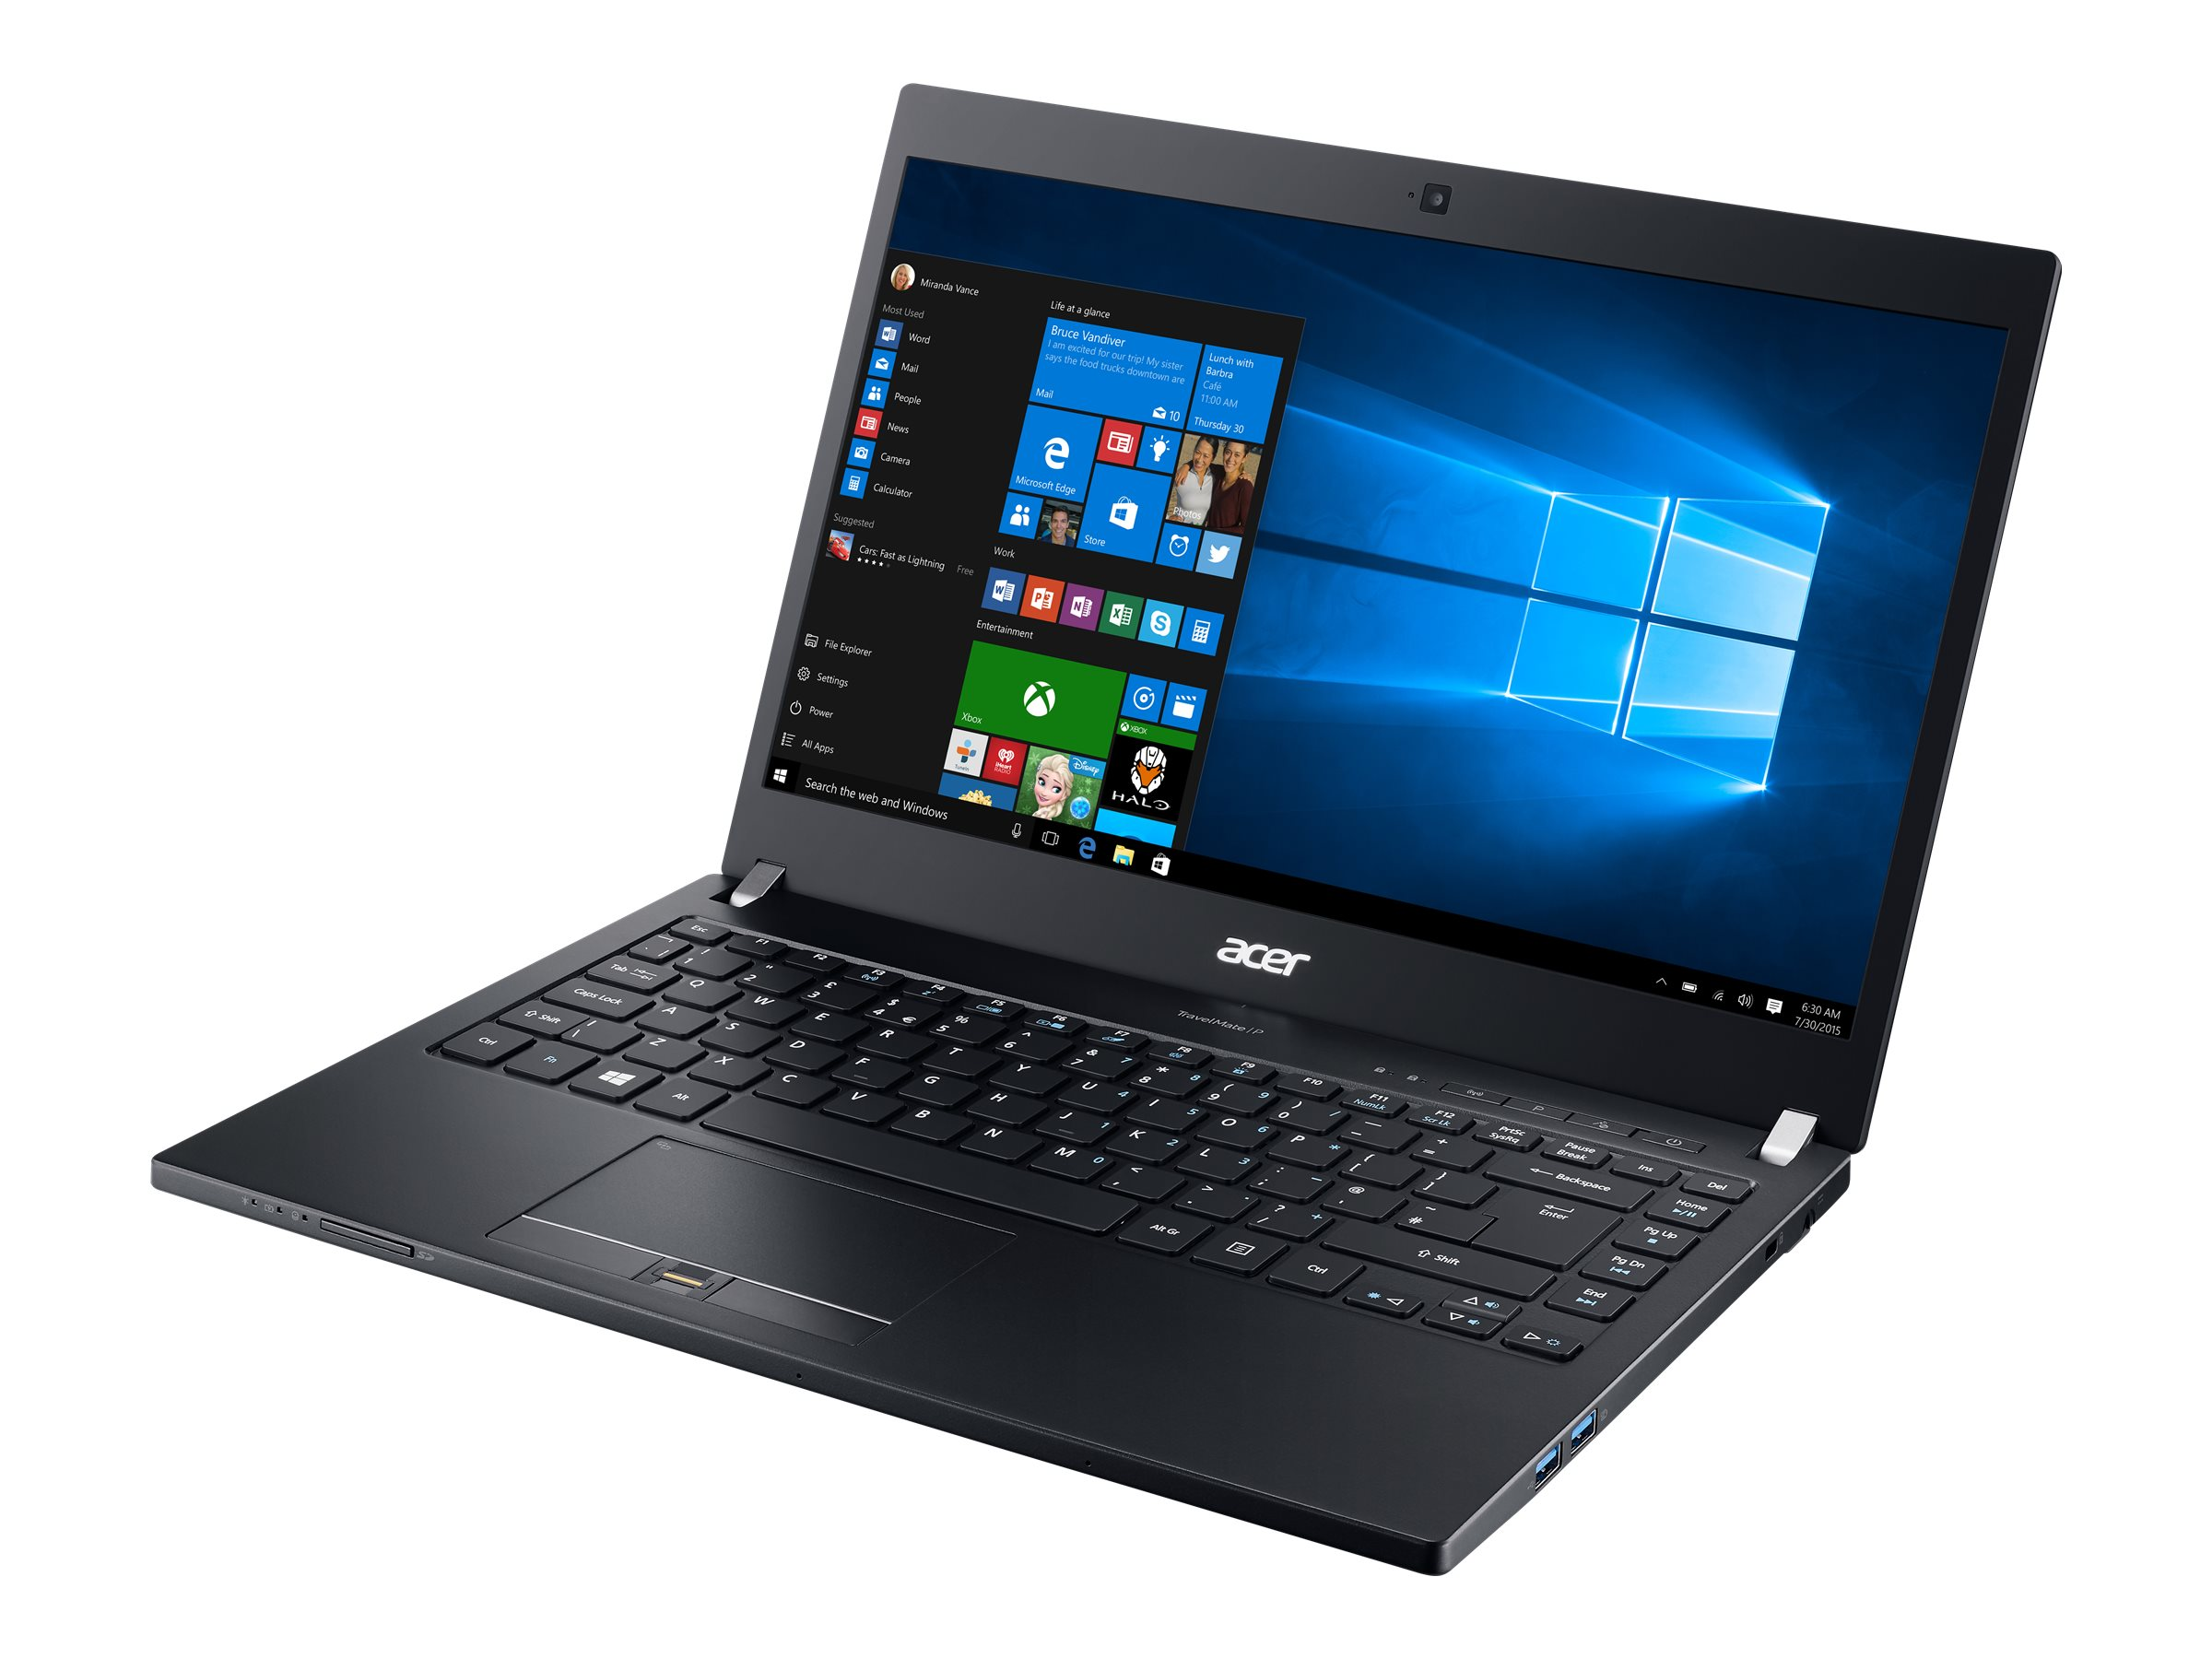 Acer Travelmate P648-M-59Q7 2.4GHz Core i5 14in display, NX.VCKAA.001